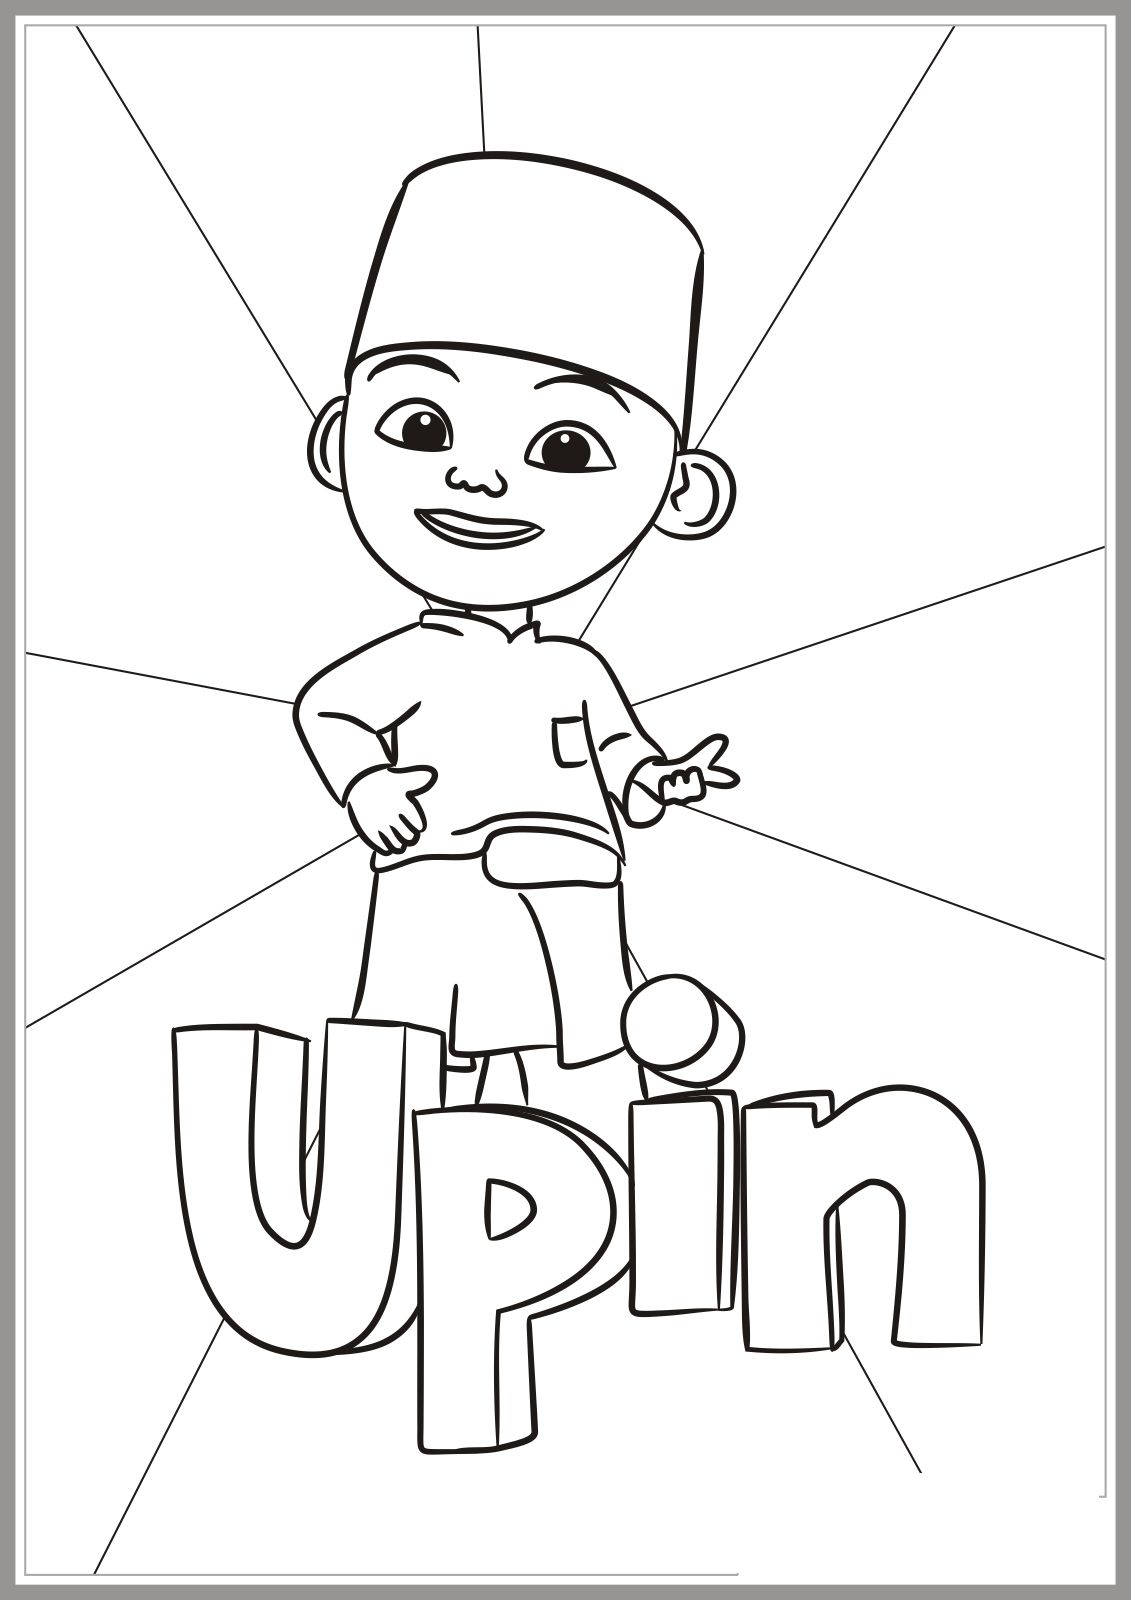 Upin Ipin Coloring Pages Plete